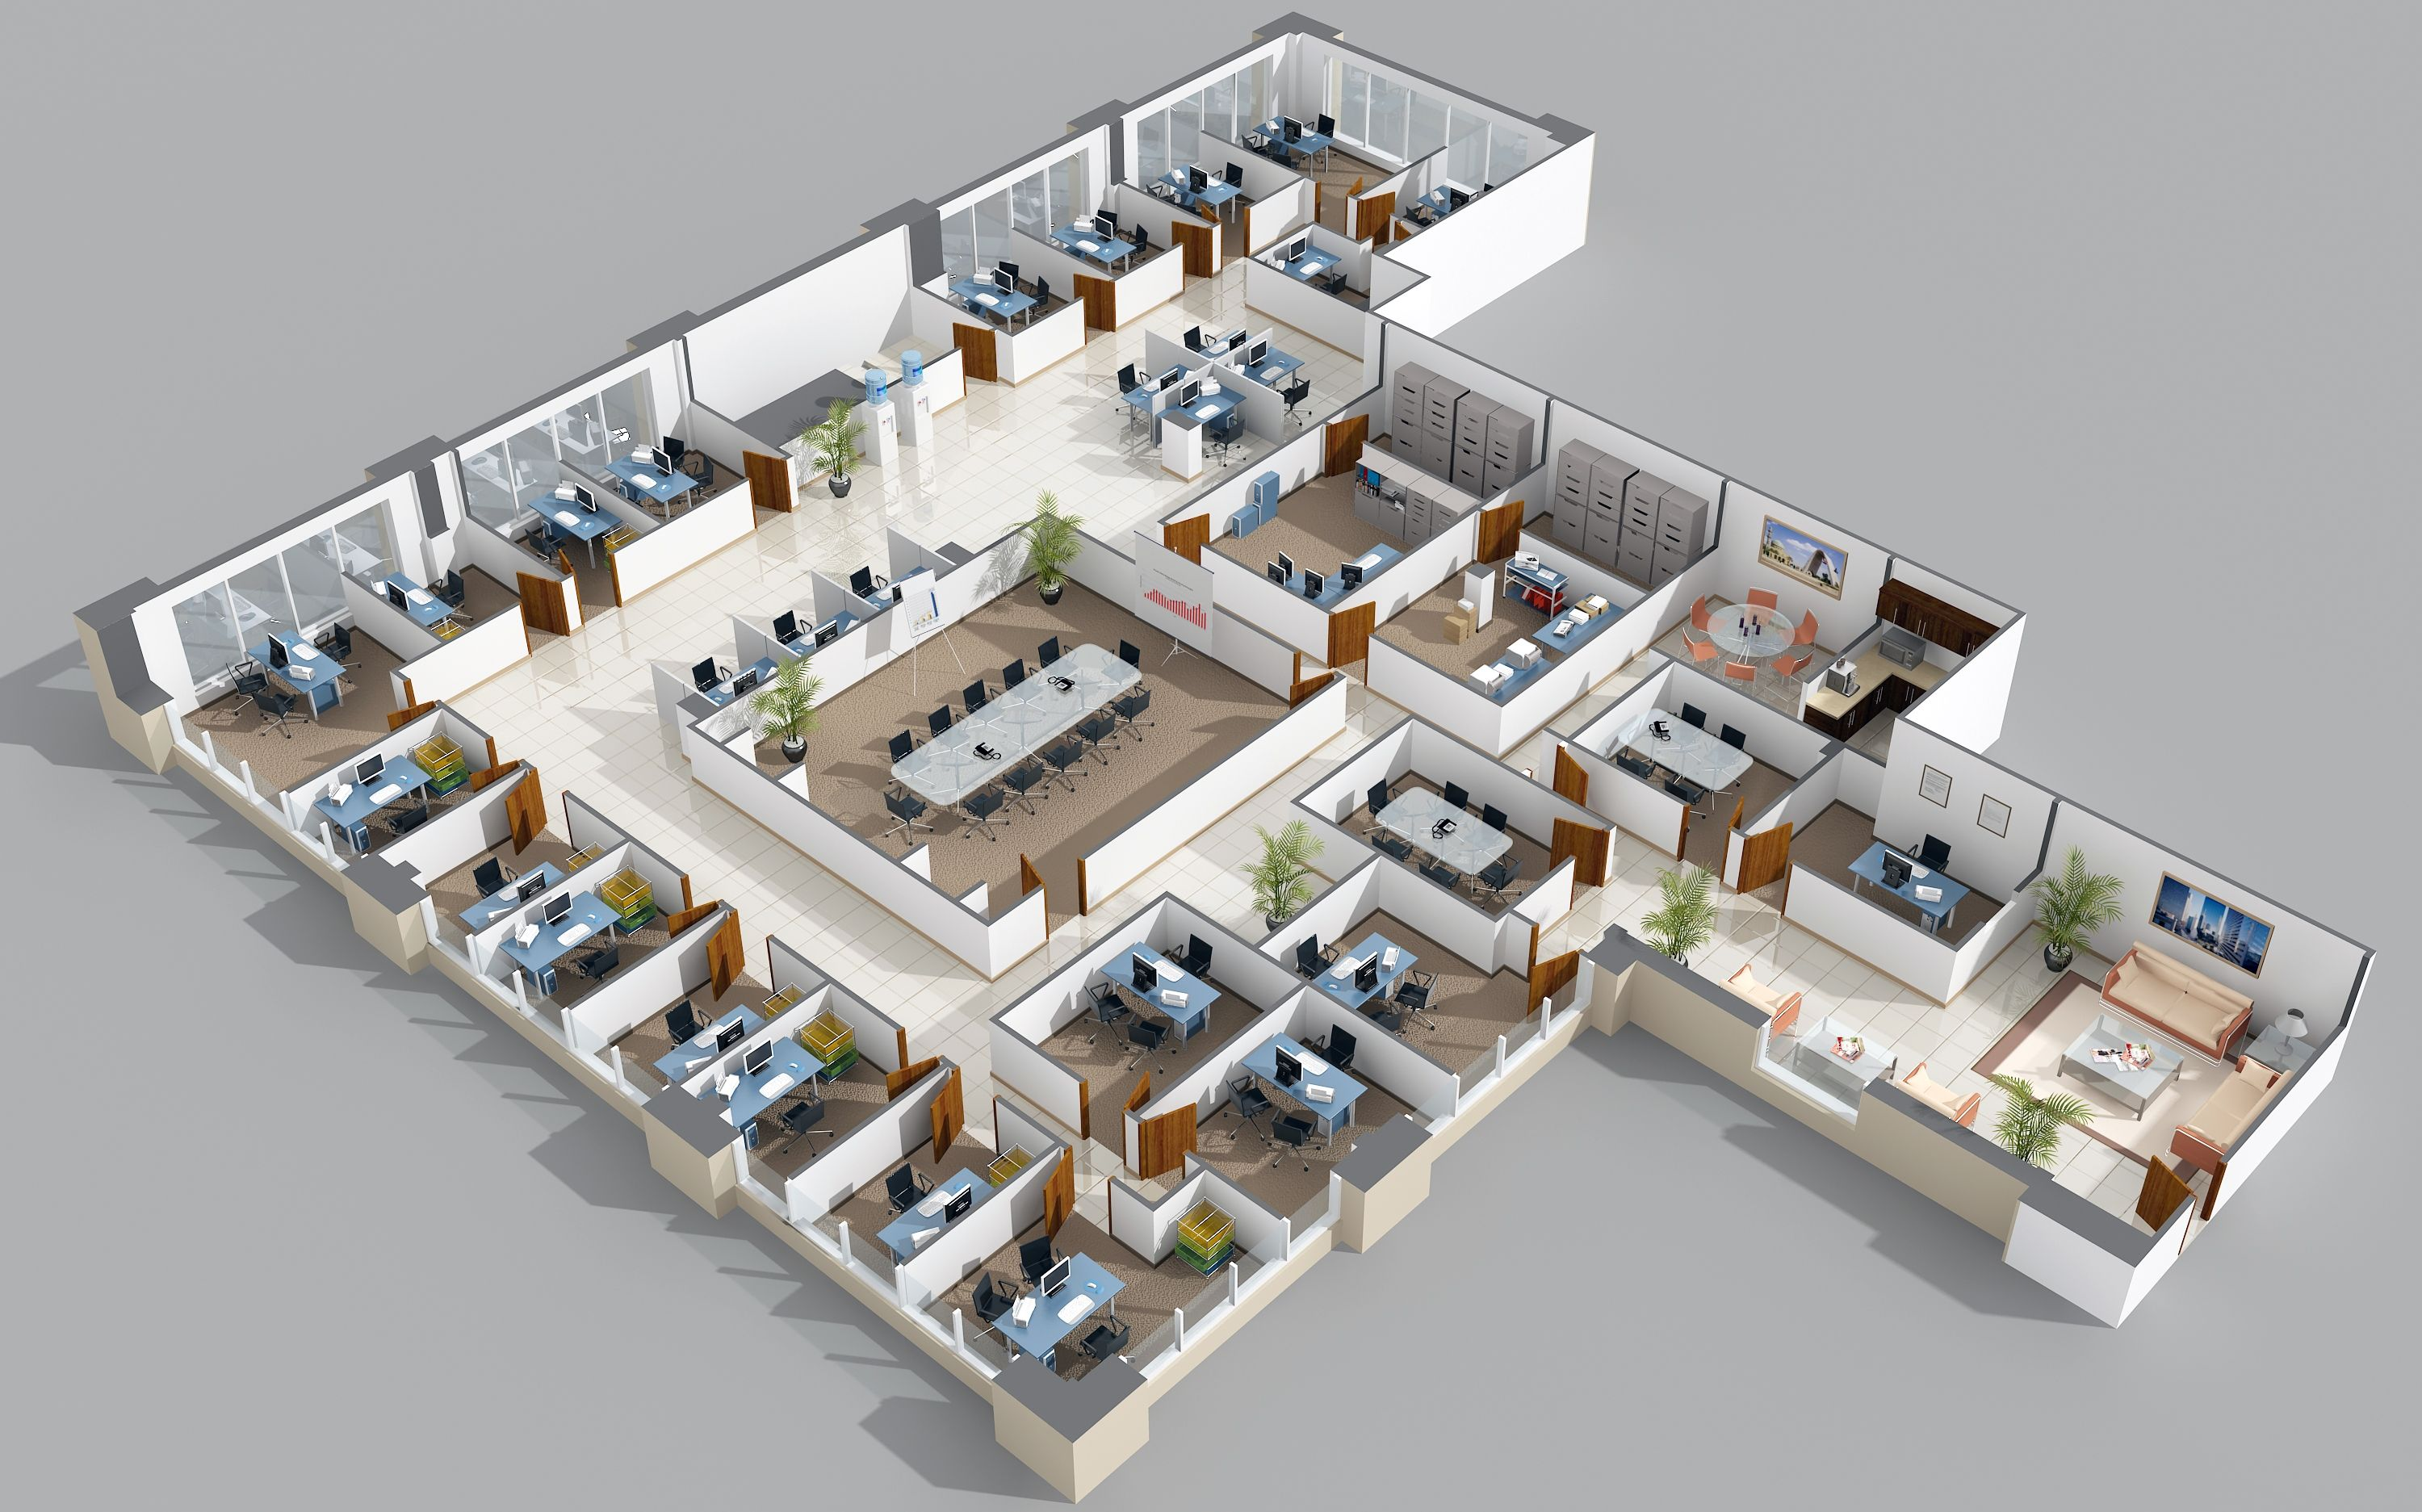 Office layout no doors veritas 99 jean pinterest industrial office space office spaces 3d planner